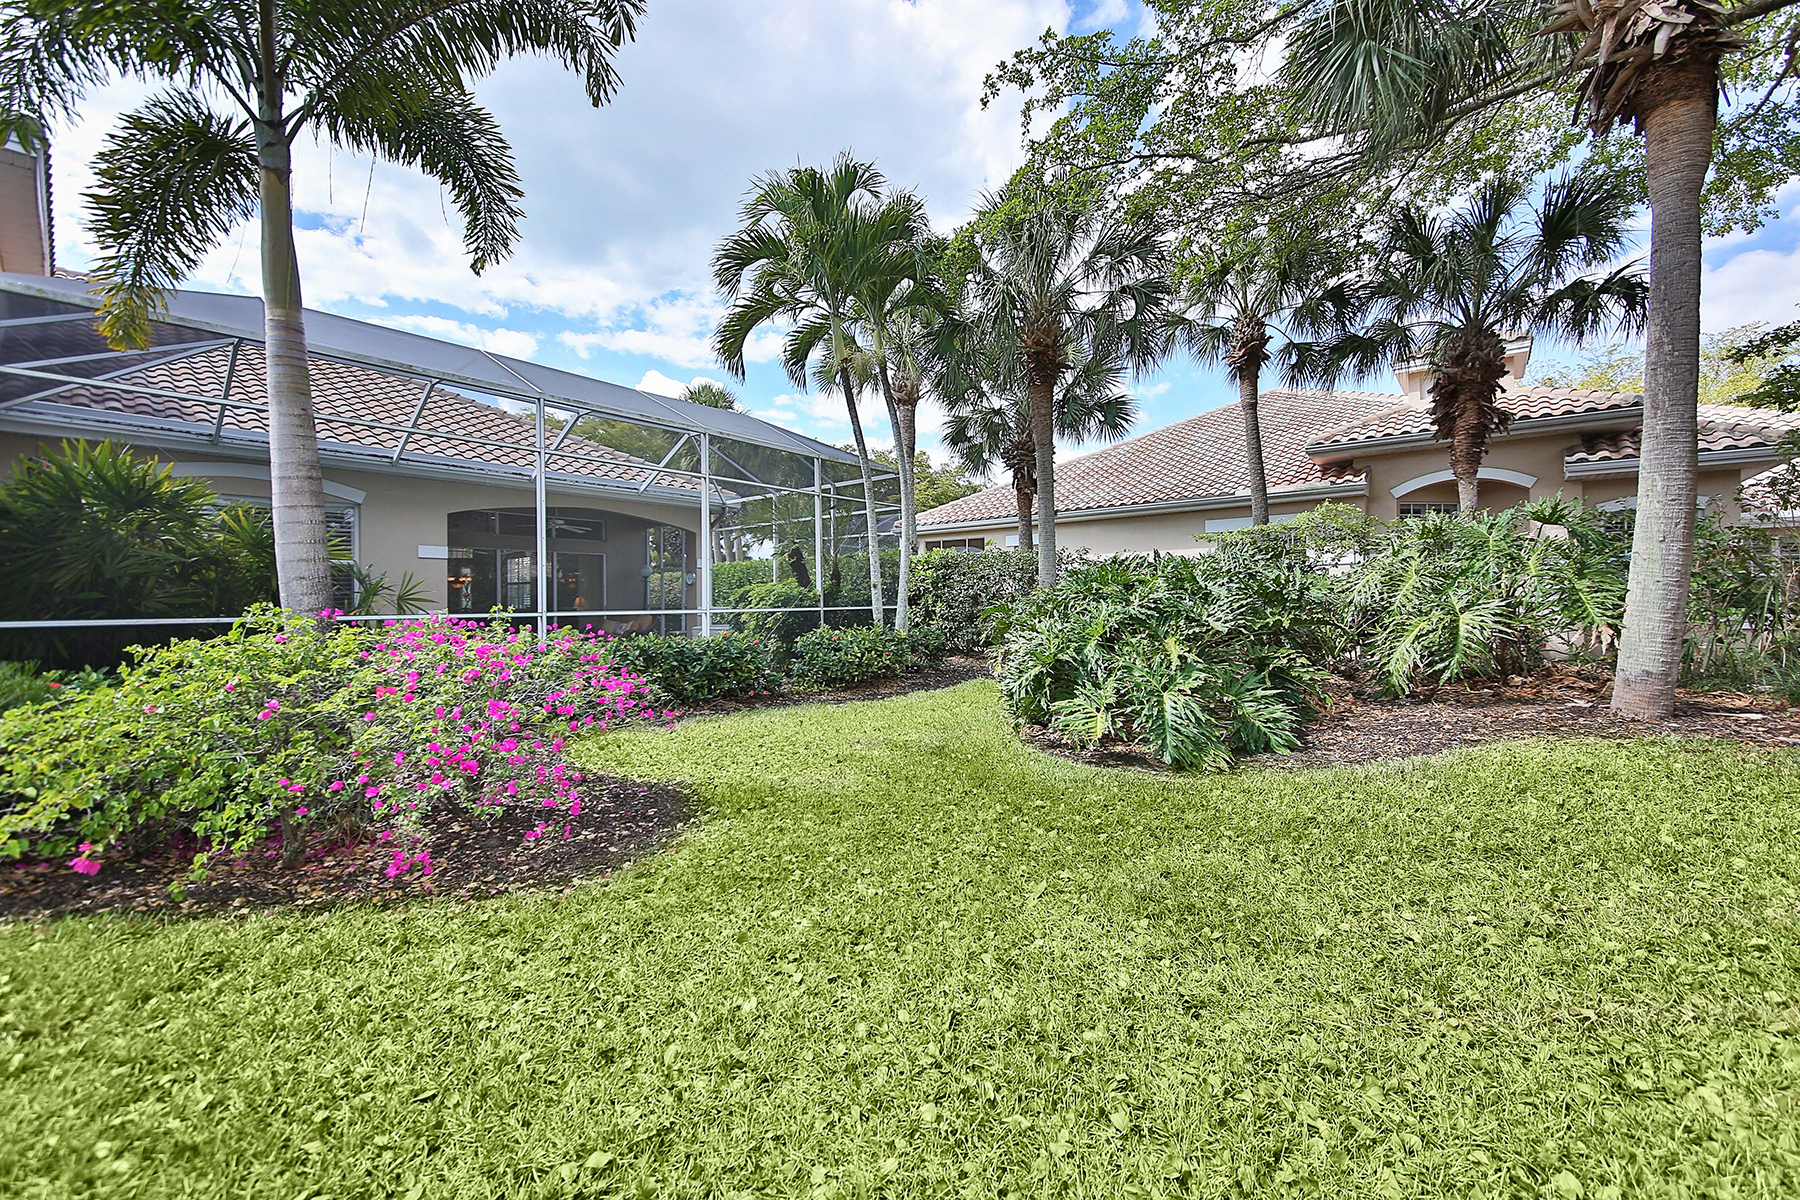 Additional photo for property listing at PELICAN LANDING - BAYCREST 25279  Galashields Cir Bonita Springs, Florida 34134 United States